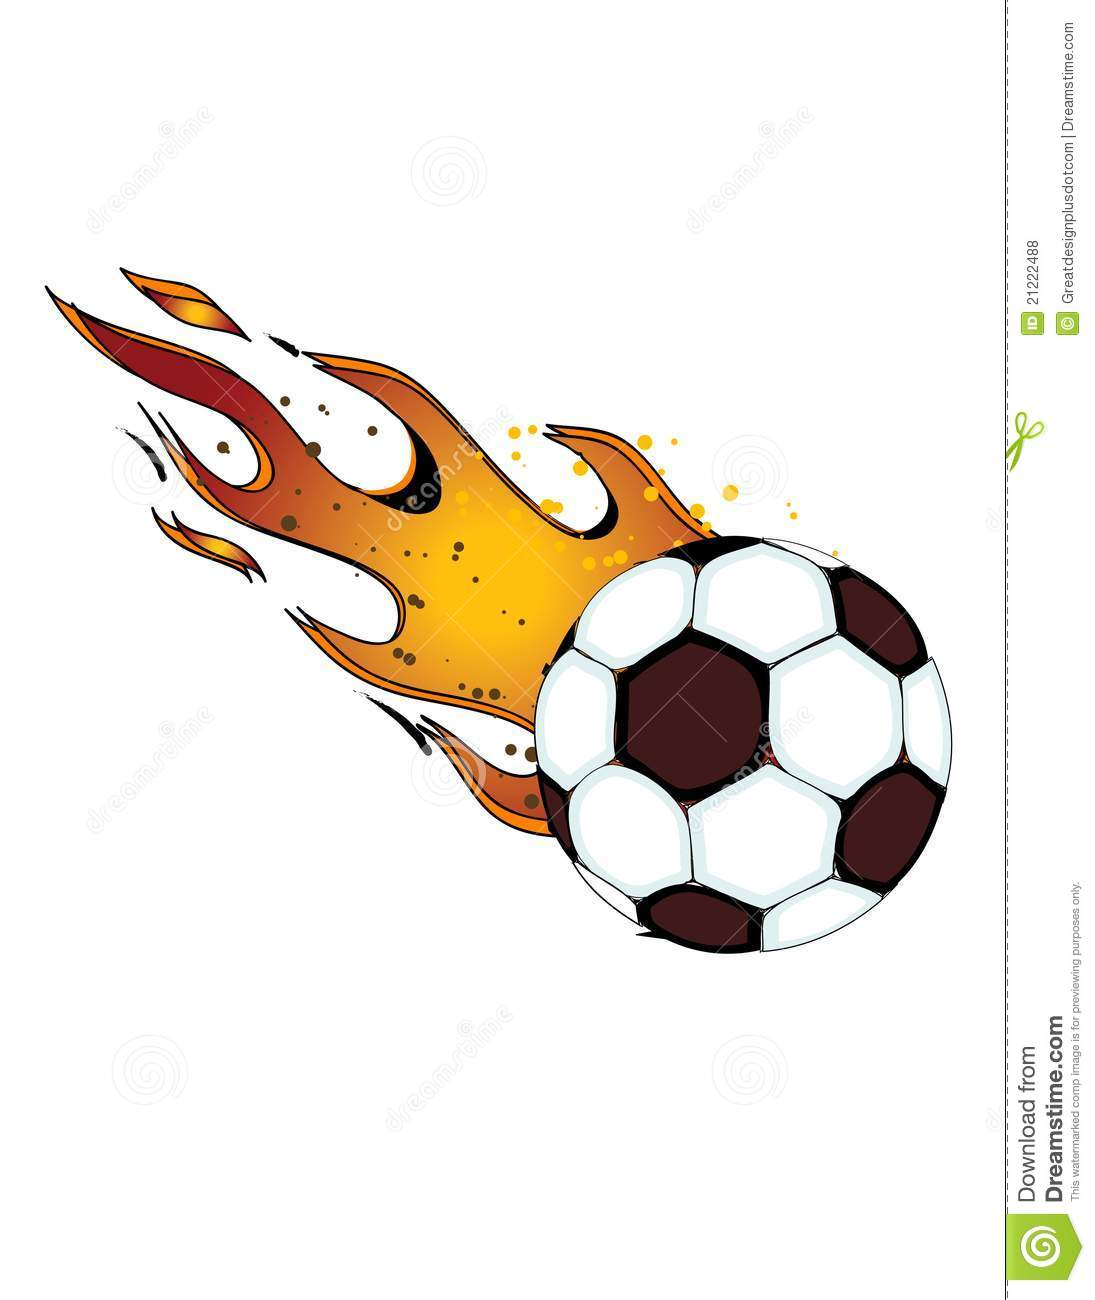 Similar Stock Images Of   Flaming Soccerball   Football  Vector Eps8